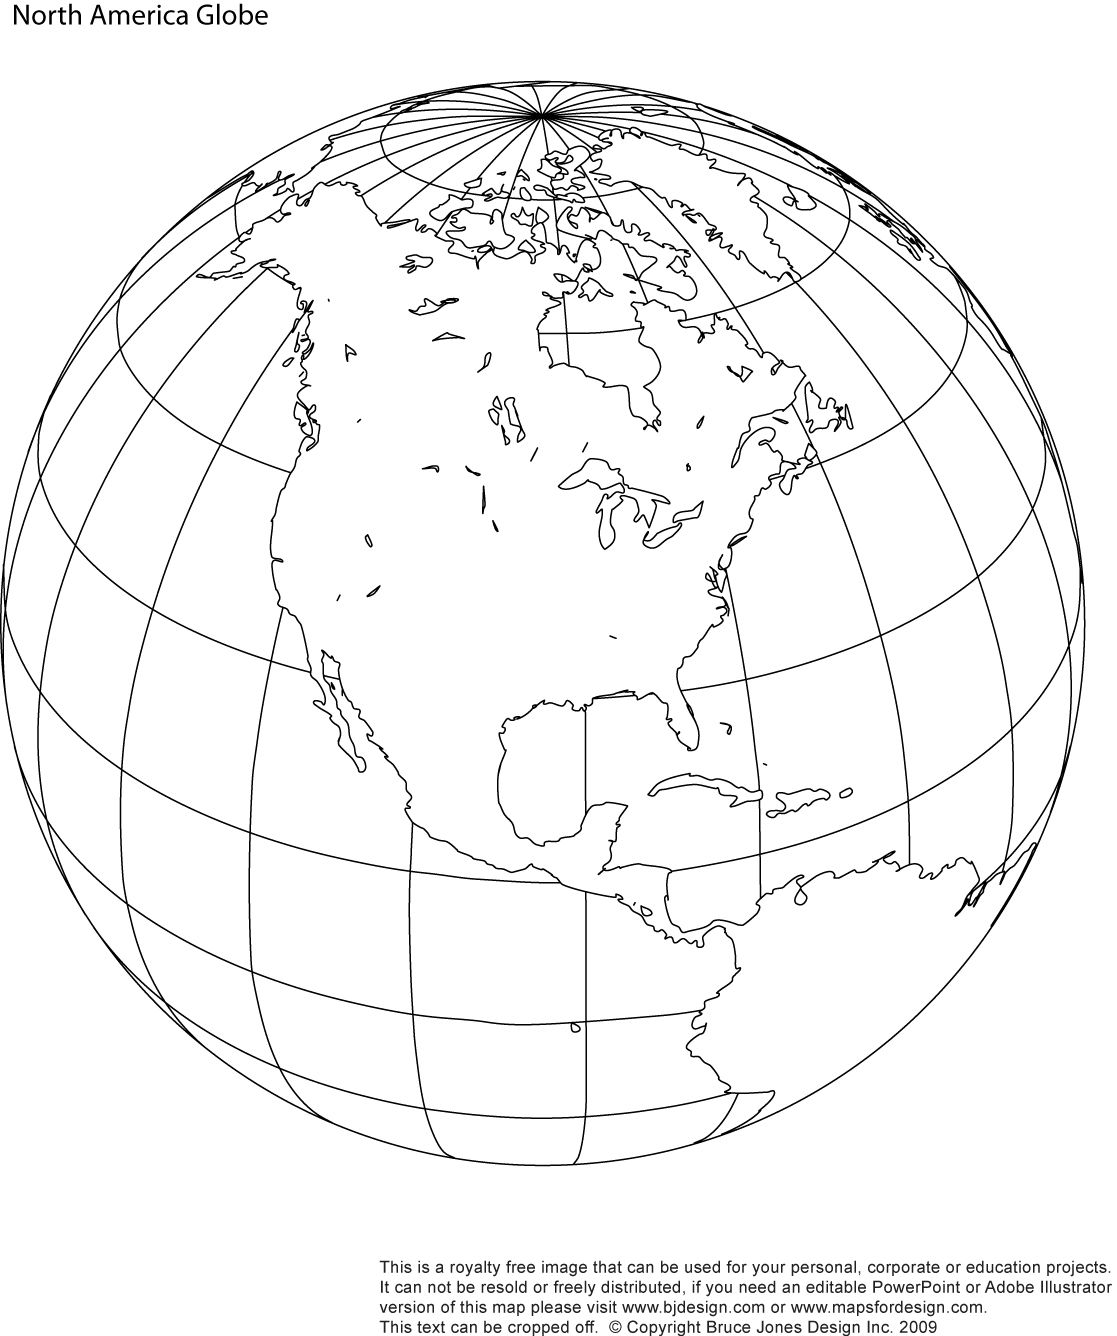 North America Printable Globe, Perfect For A School Or Craft Project.  Download And Print The Royalty Free Map.